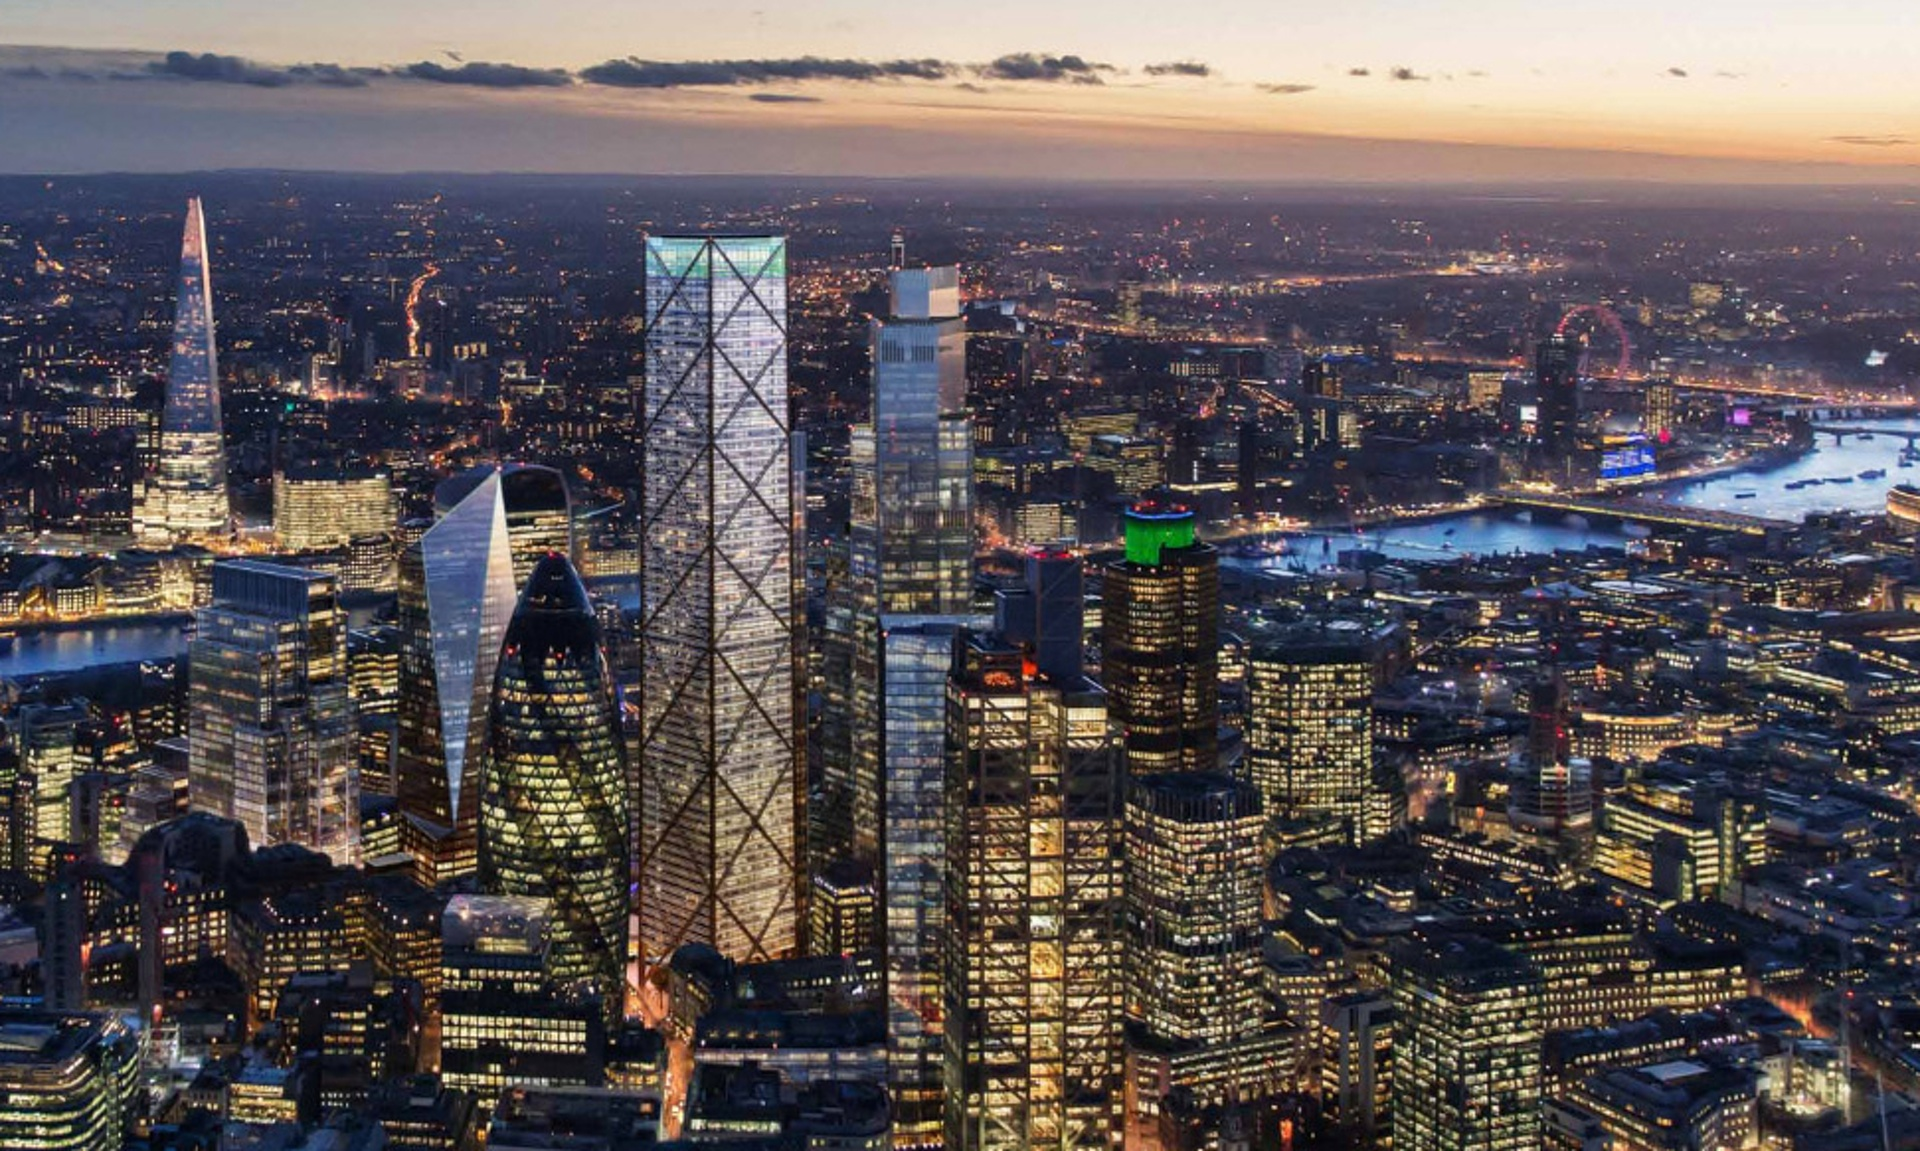 United Kingdom London to have 2 new skyscrapers Dilemma X